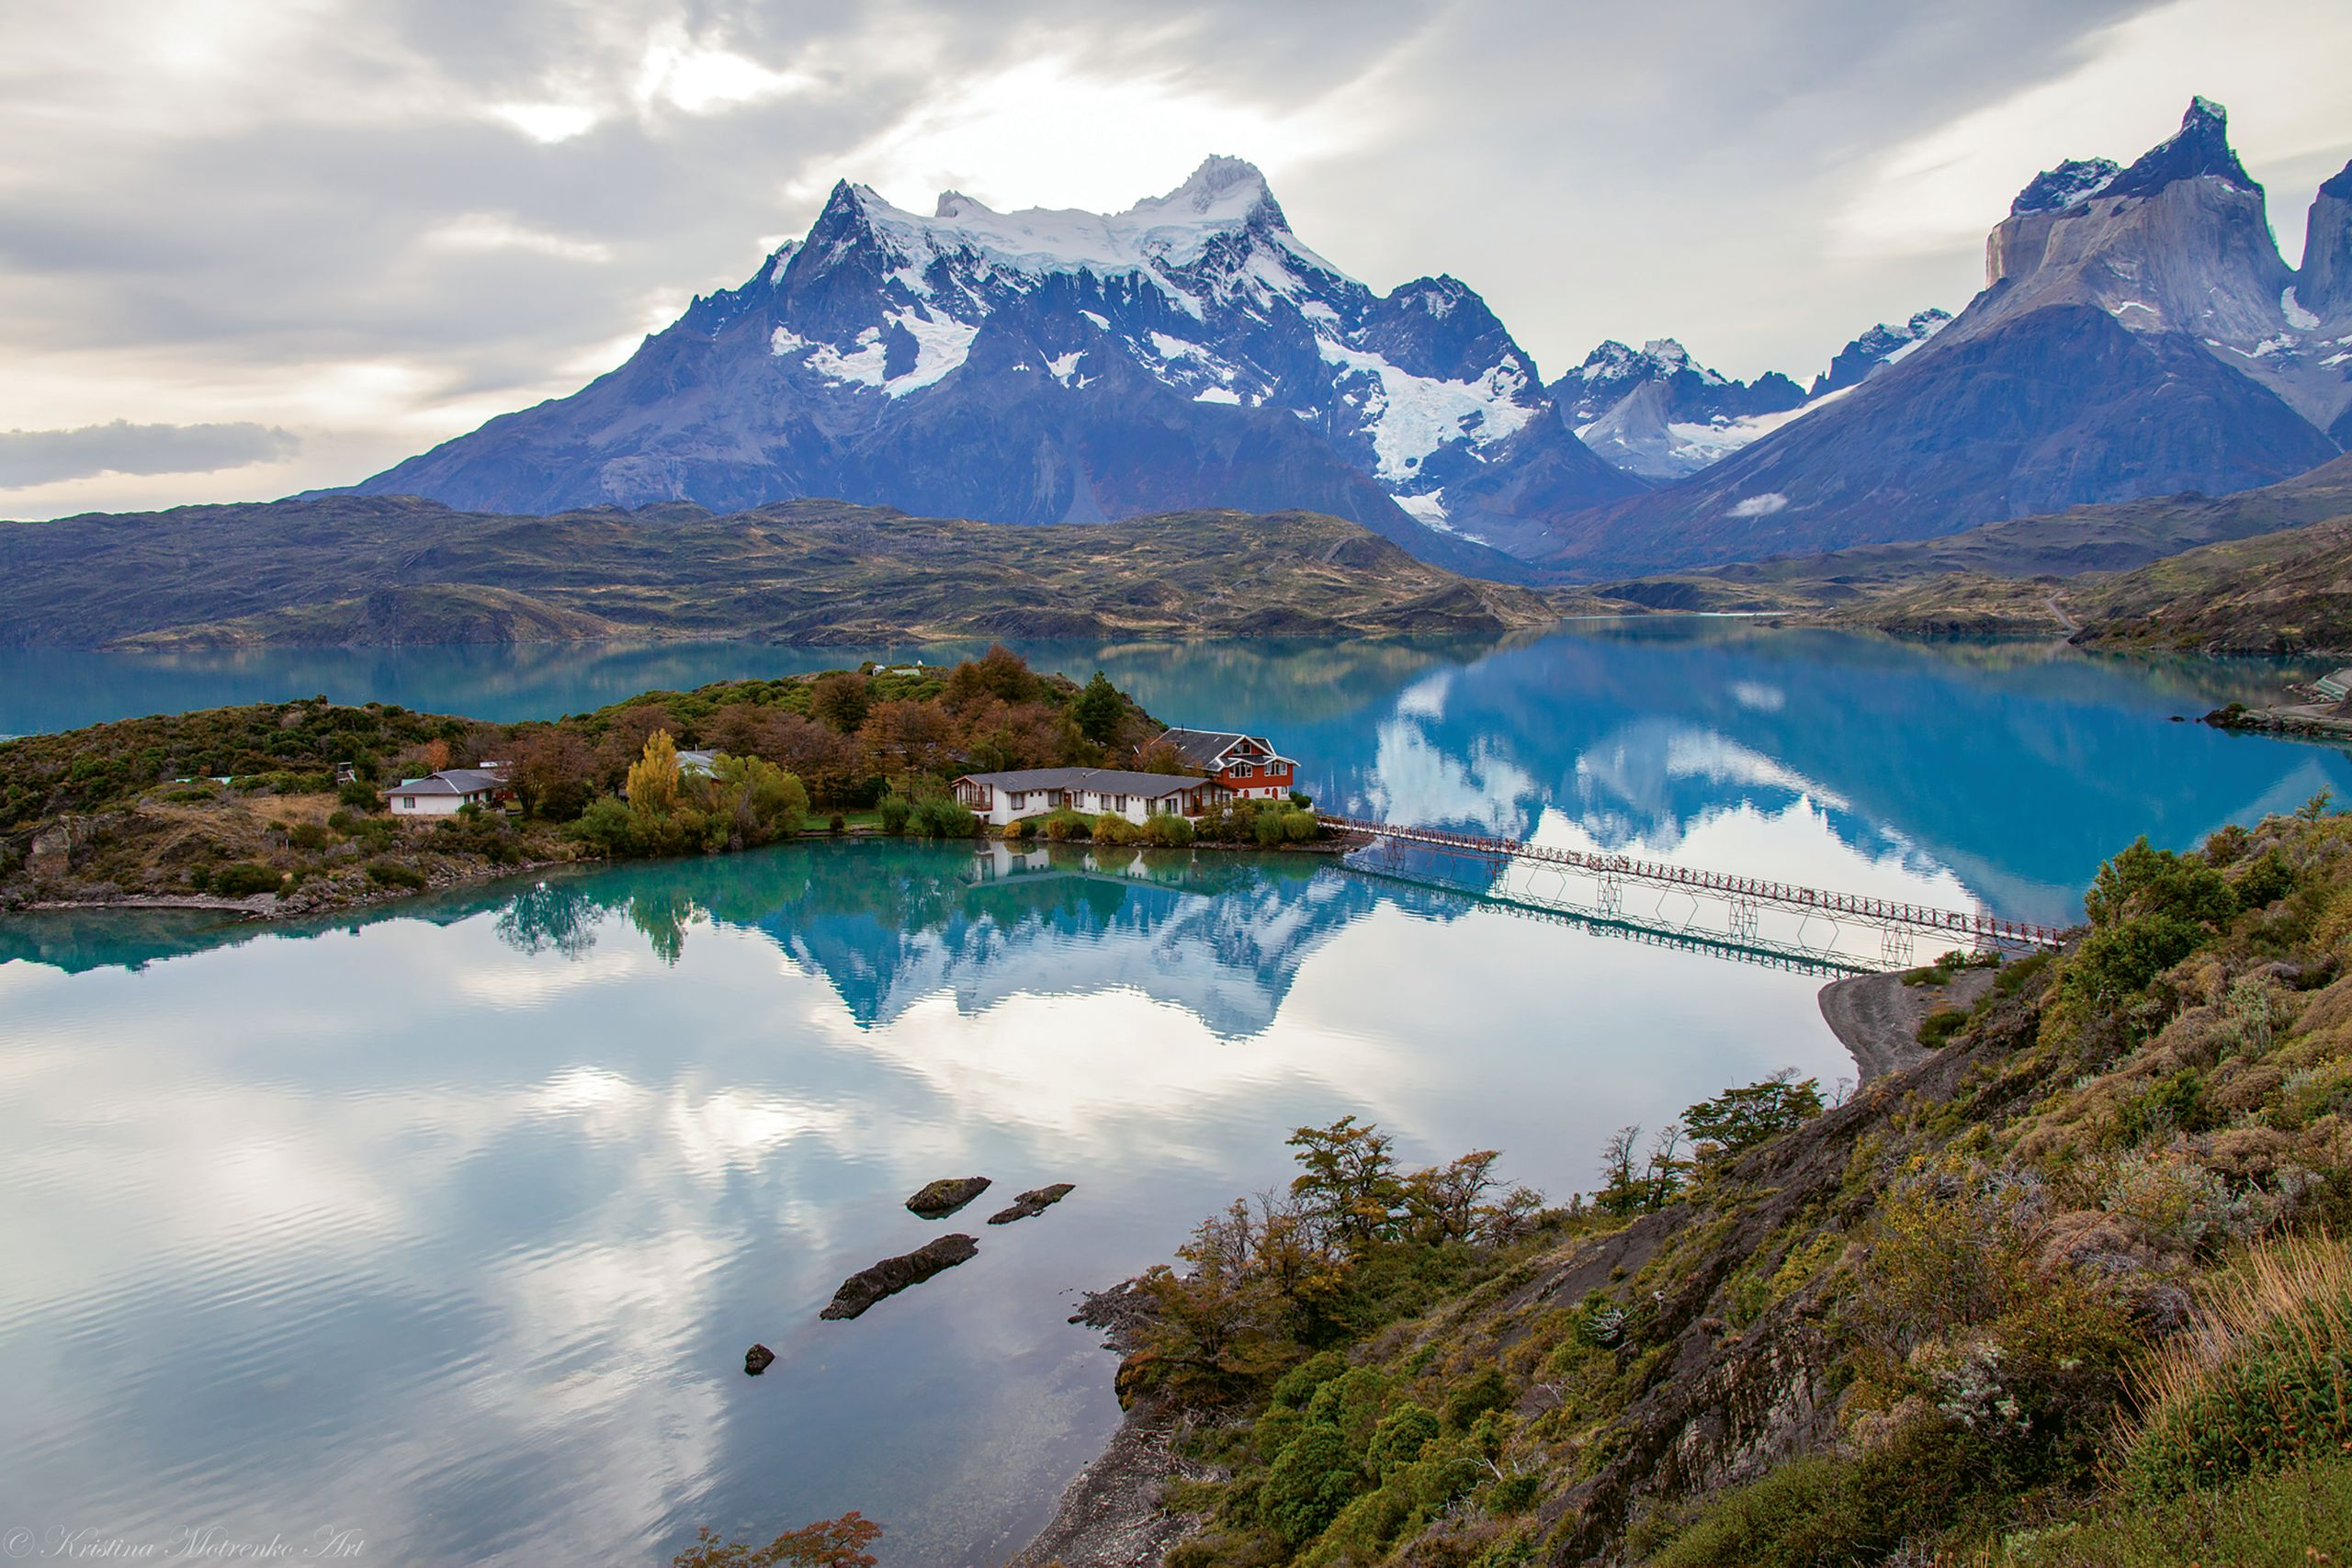 Luxury adventure travel companies specialize in high-end trips to out-of-the-way destinations, such as Patagonia. (Photo courtesy of Pelorus)